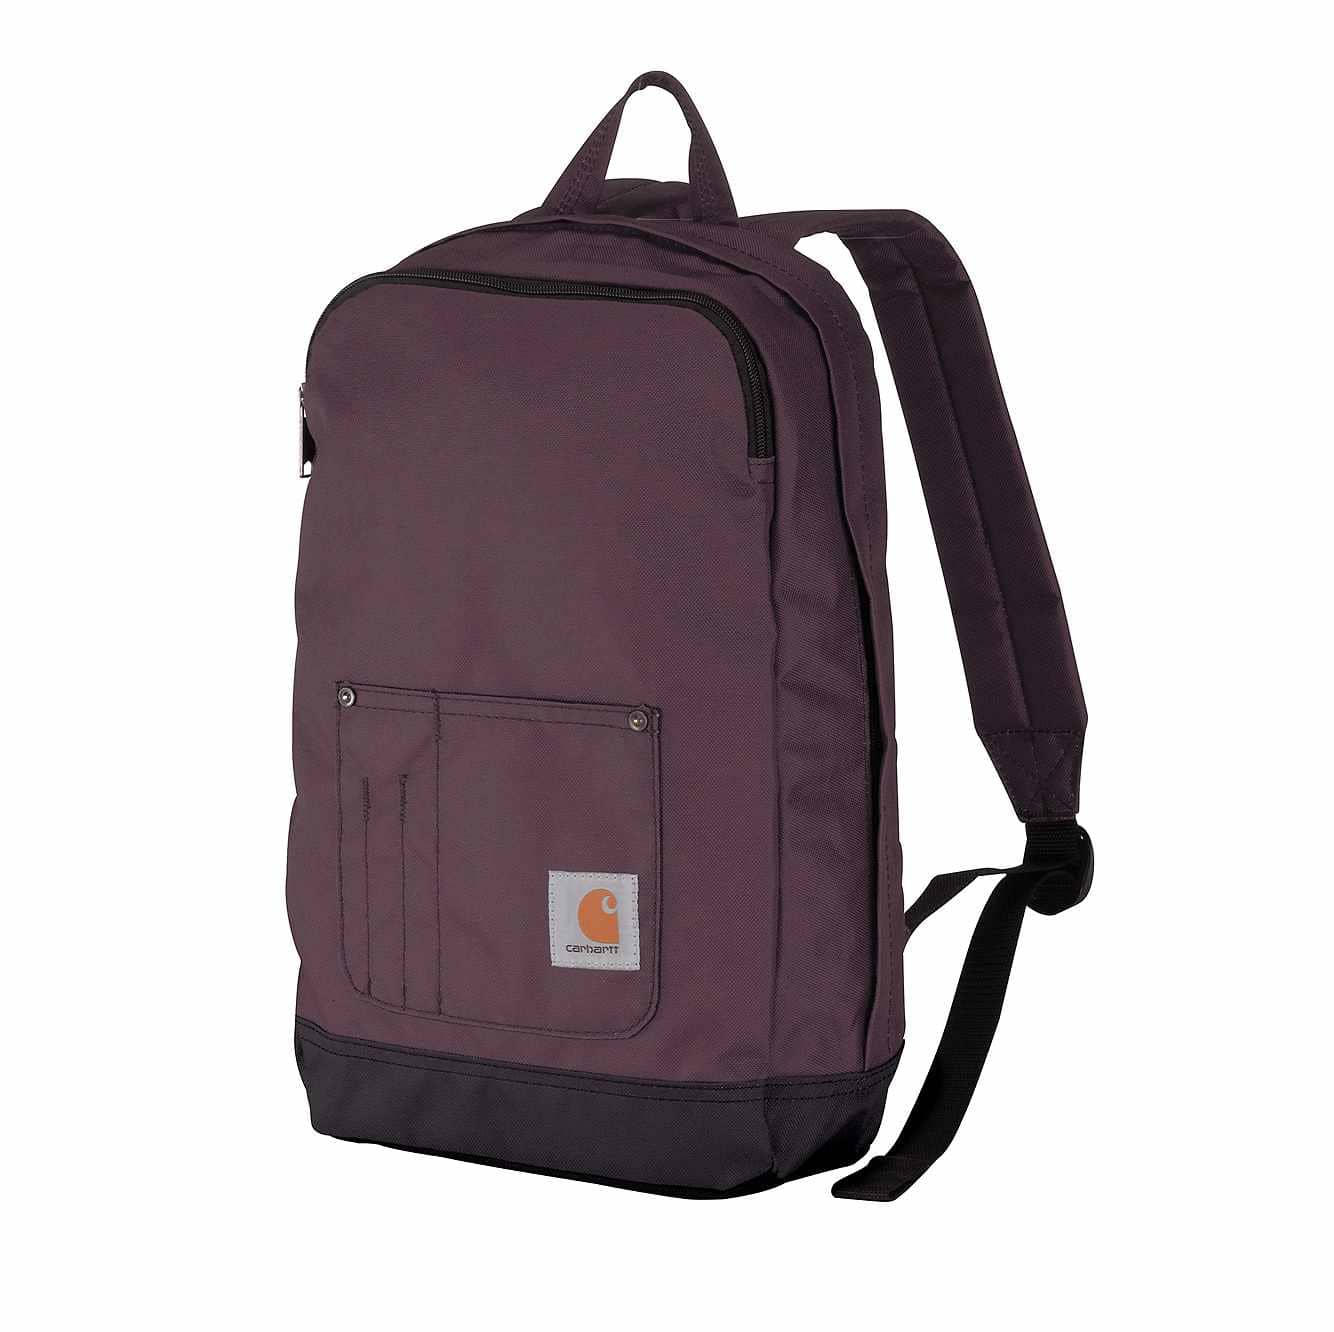 Picture of Legacy Compact Backpack in Wine